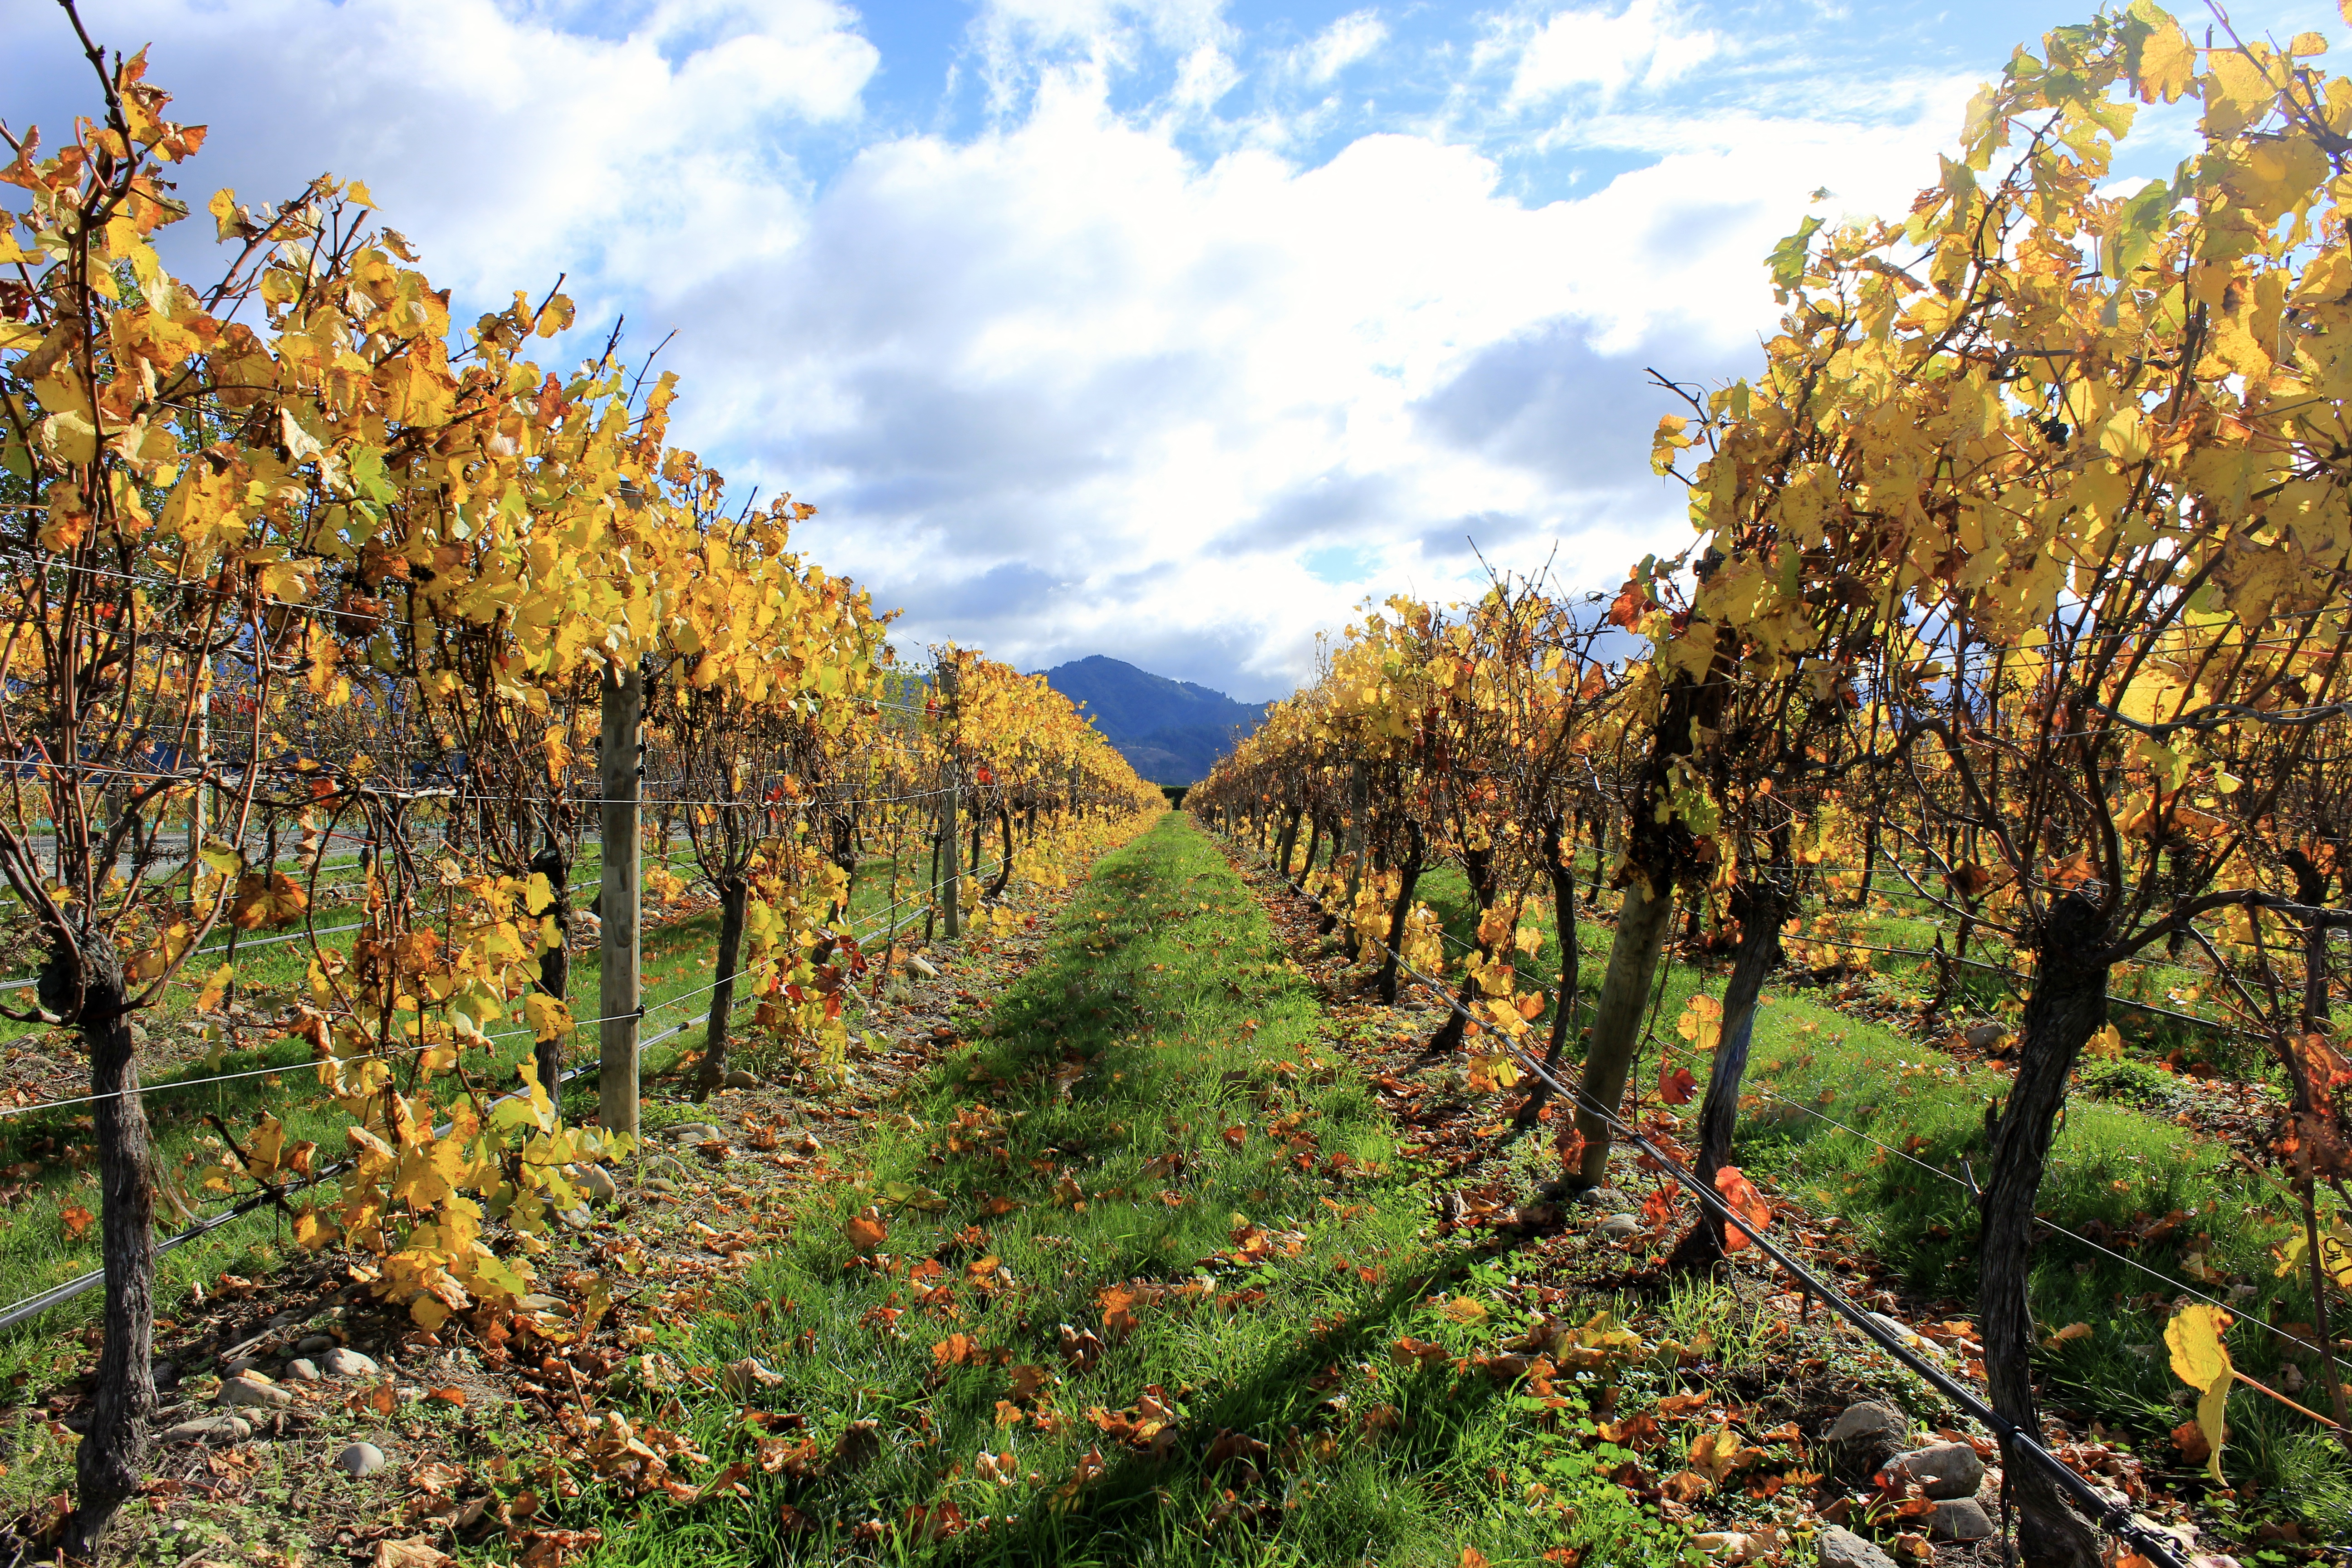 Rows of golden vineyard leaves in New Zealand